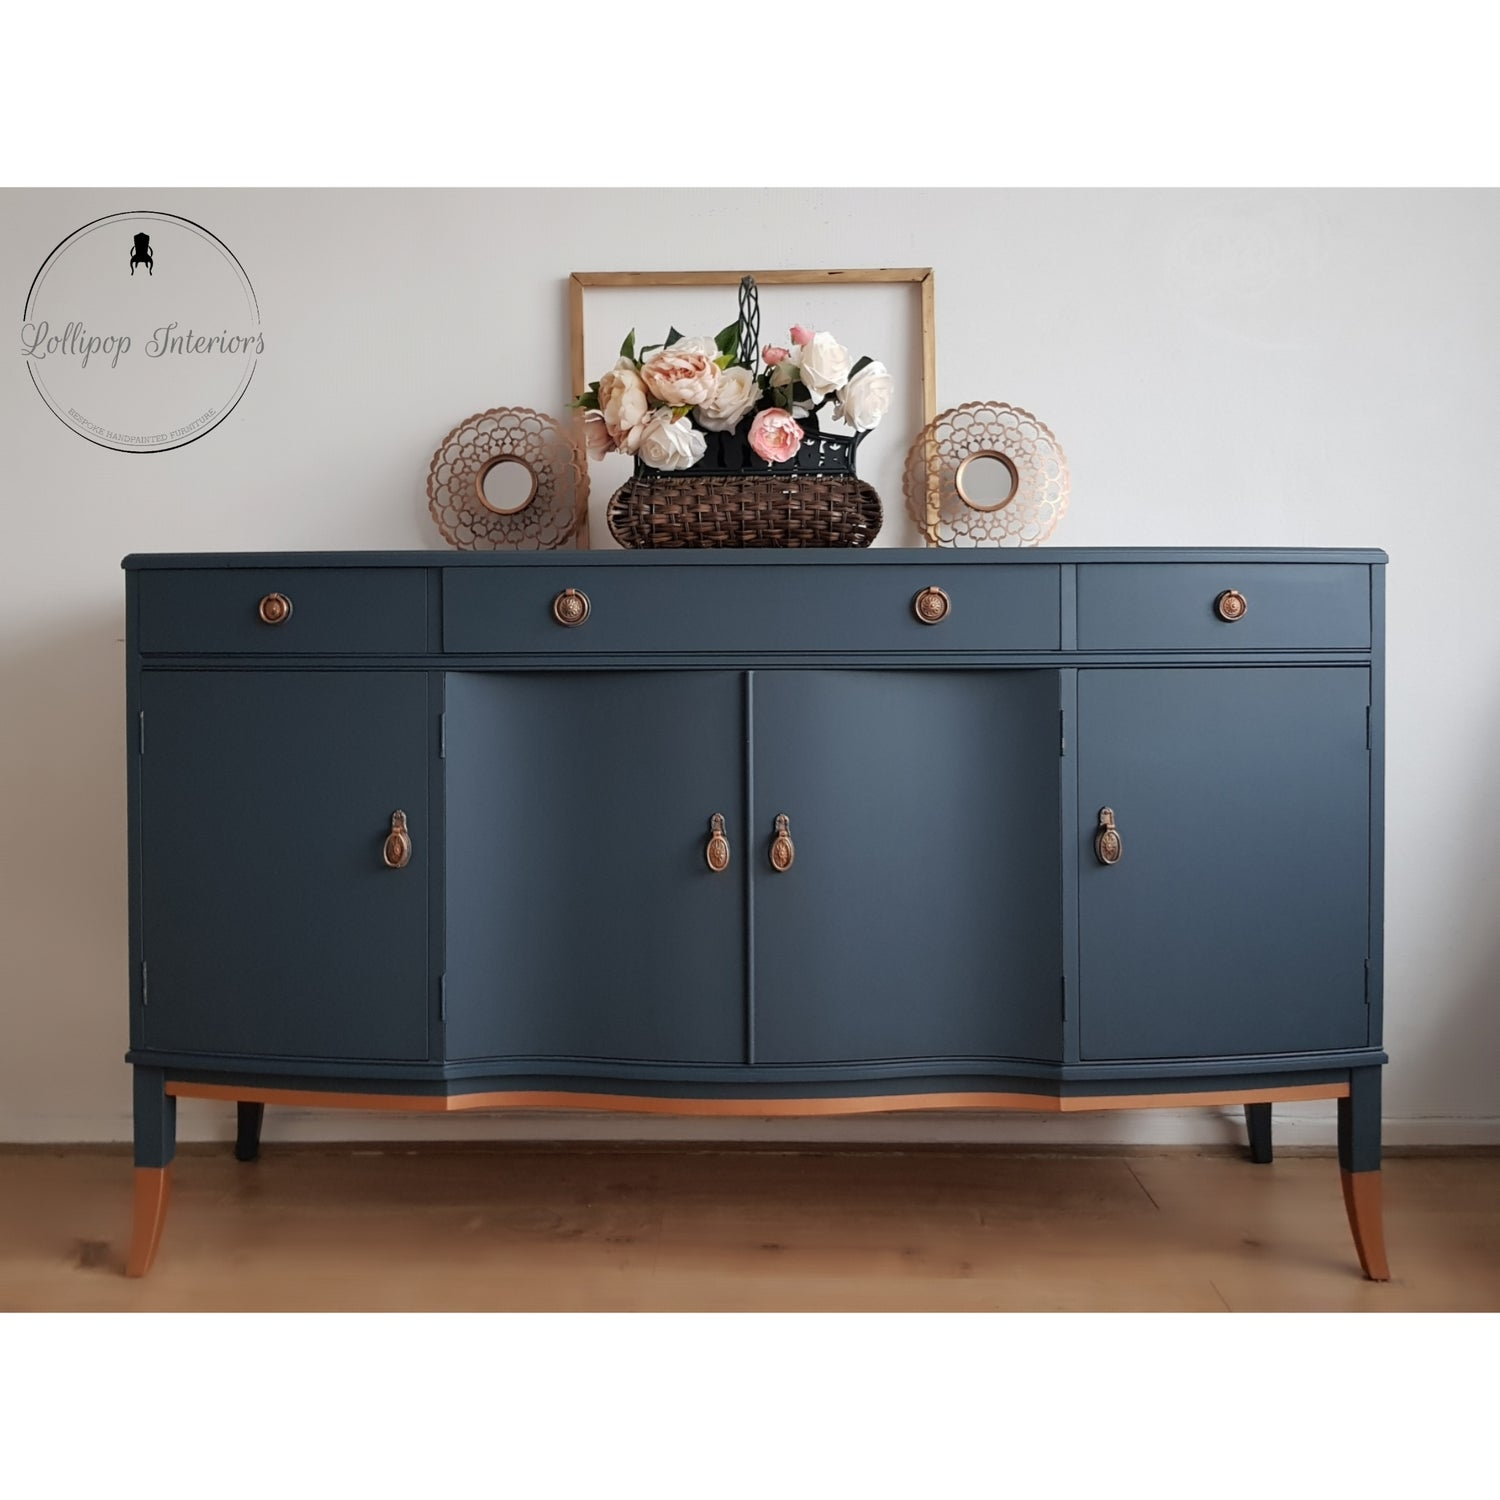 Image of Vintage sideboard